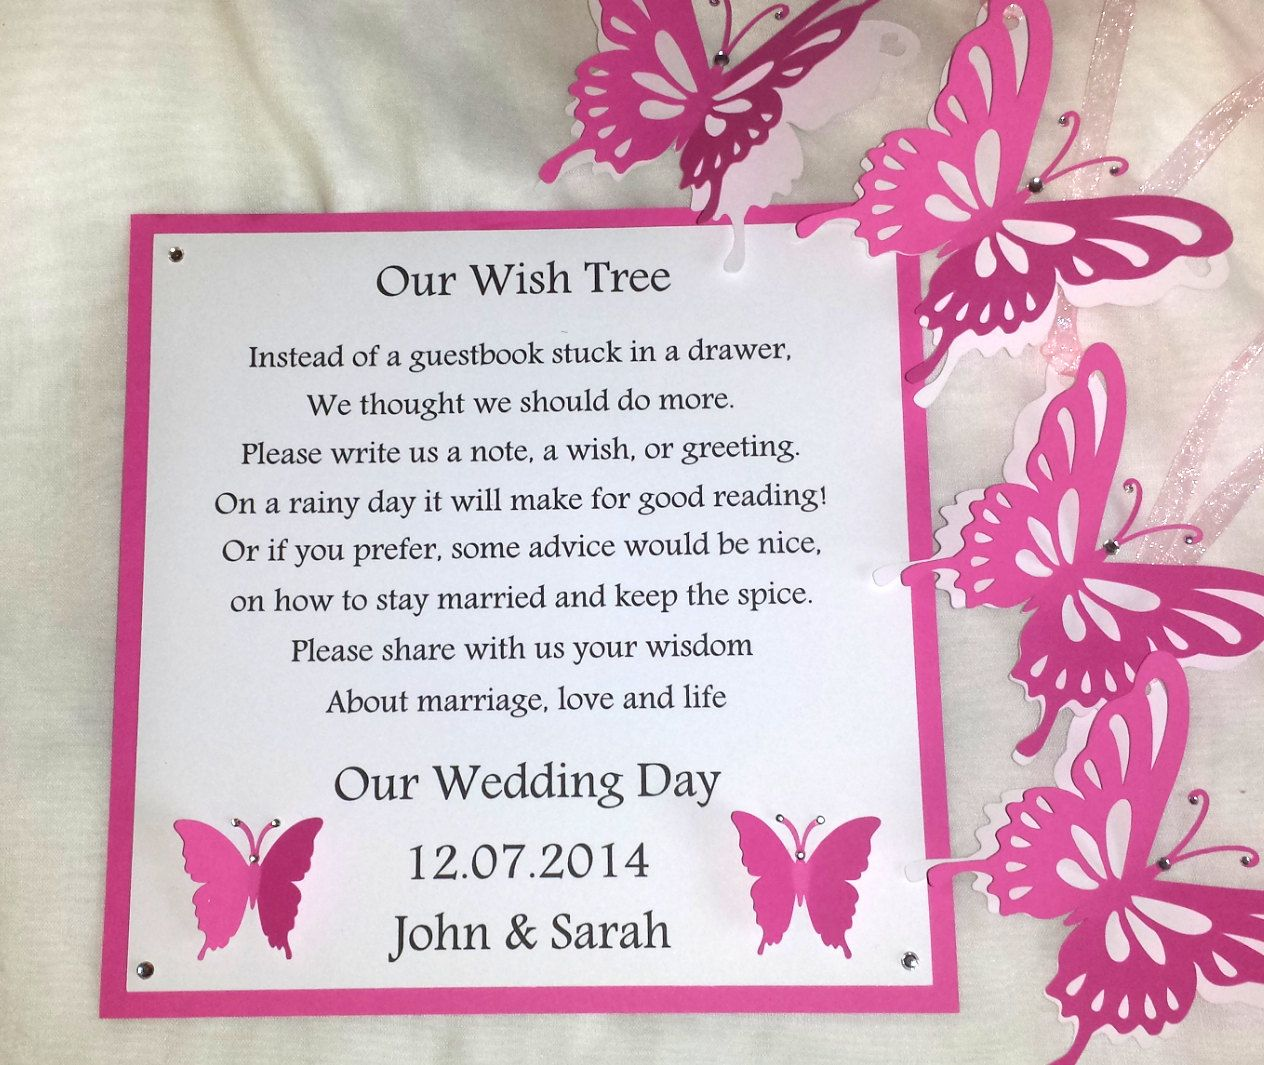 Personalised wish tree poem and butterfly wish by greensendcraft personalised wish tree poem and butterfly wish by greensendcraft 030 kristyandbryce Choice Image